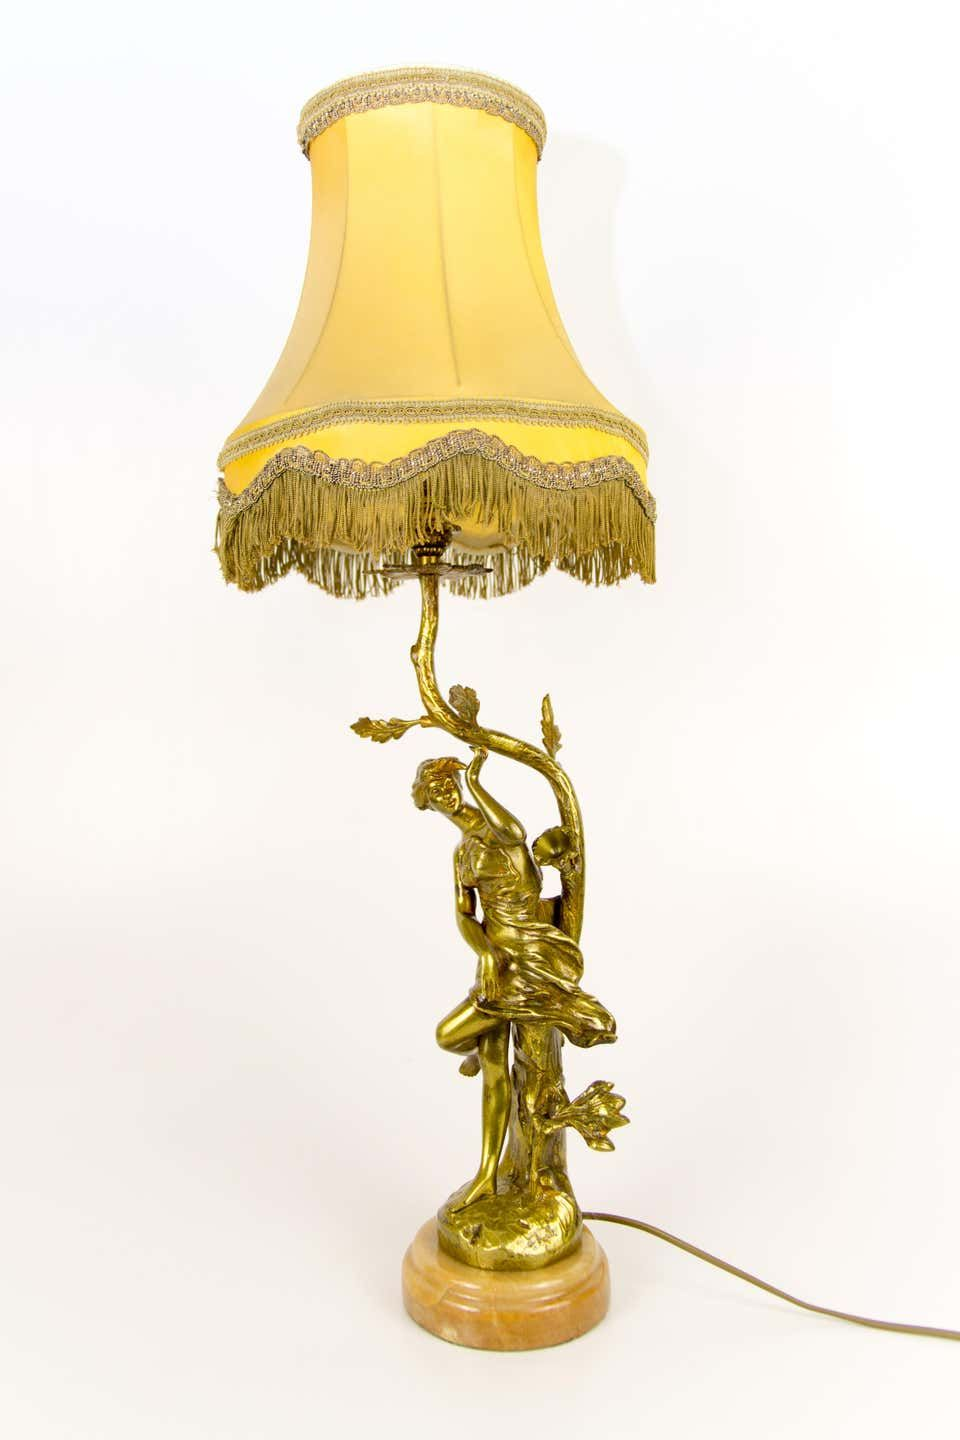 Bronze And Onyx Table Lamp With Lady Figure And Yellow Fabric Lamp Shade Table Lamp Lamp Bronze Table Lamp